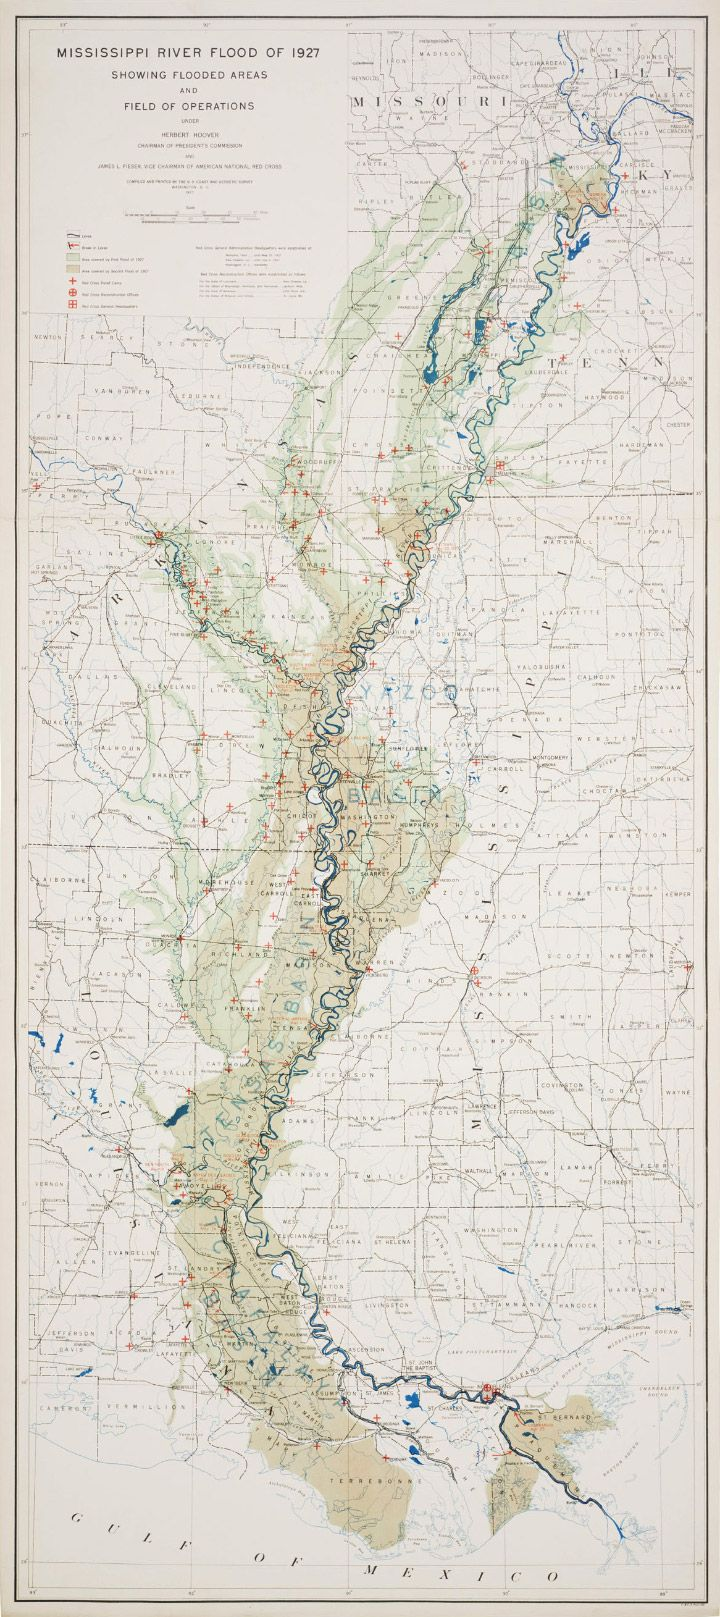 Mississippi River Flood of 1927 Showing Flooded Areas and Field of Operations.